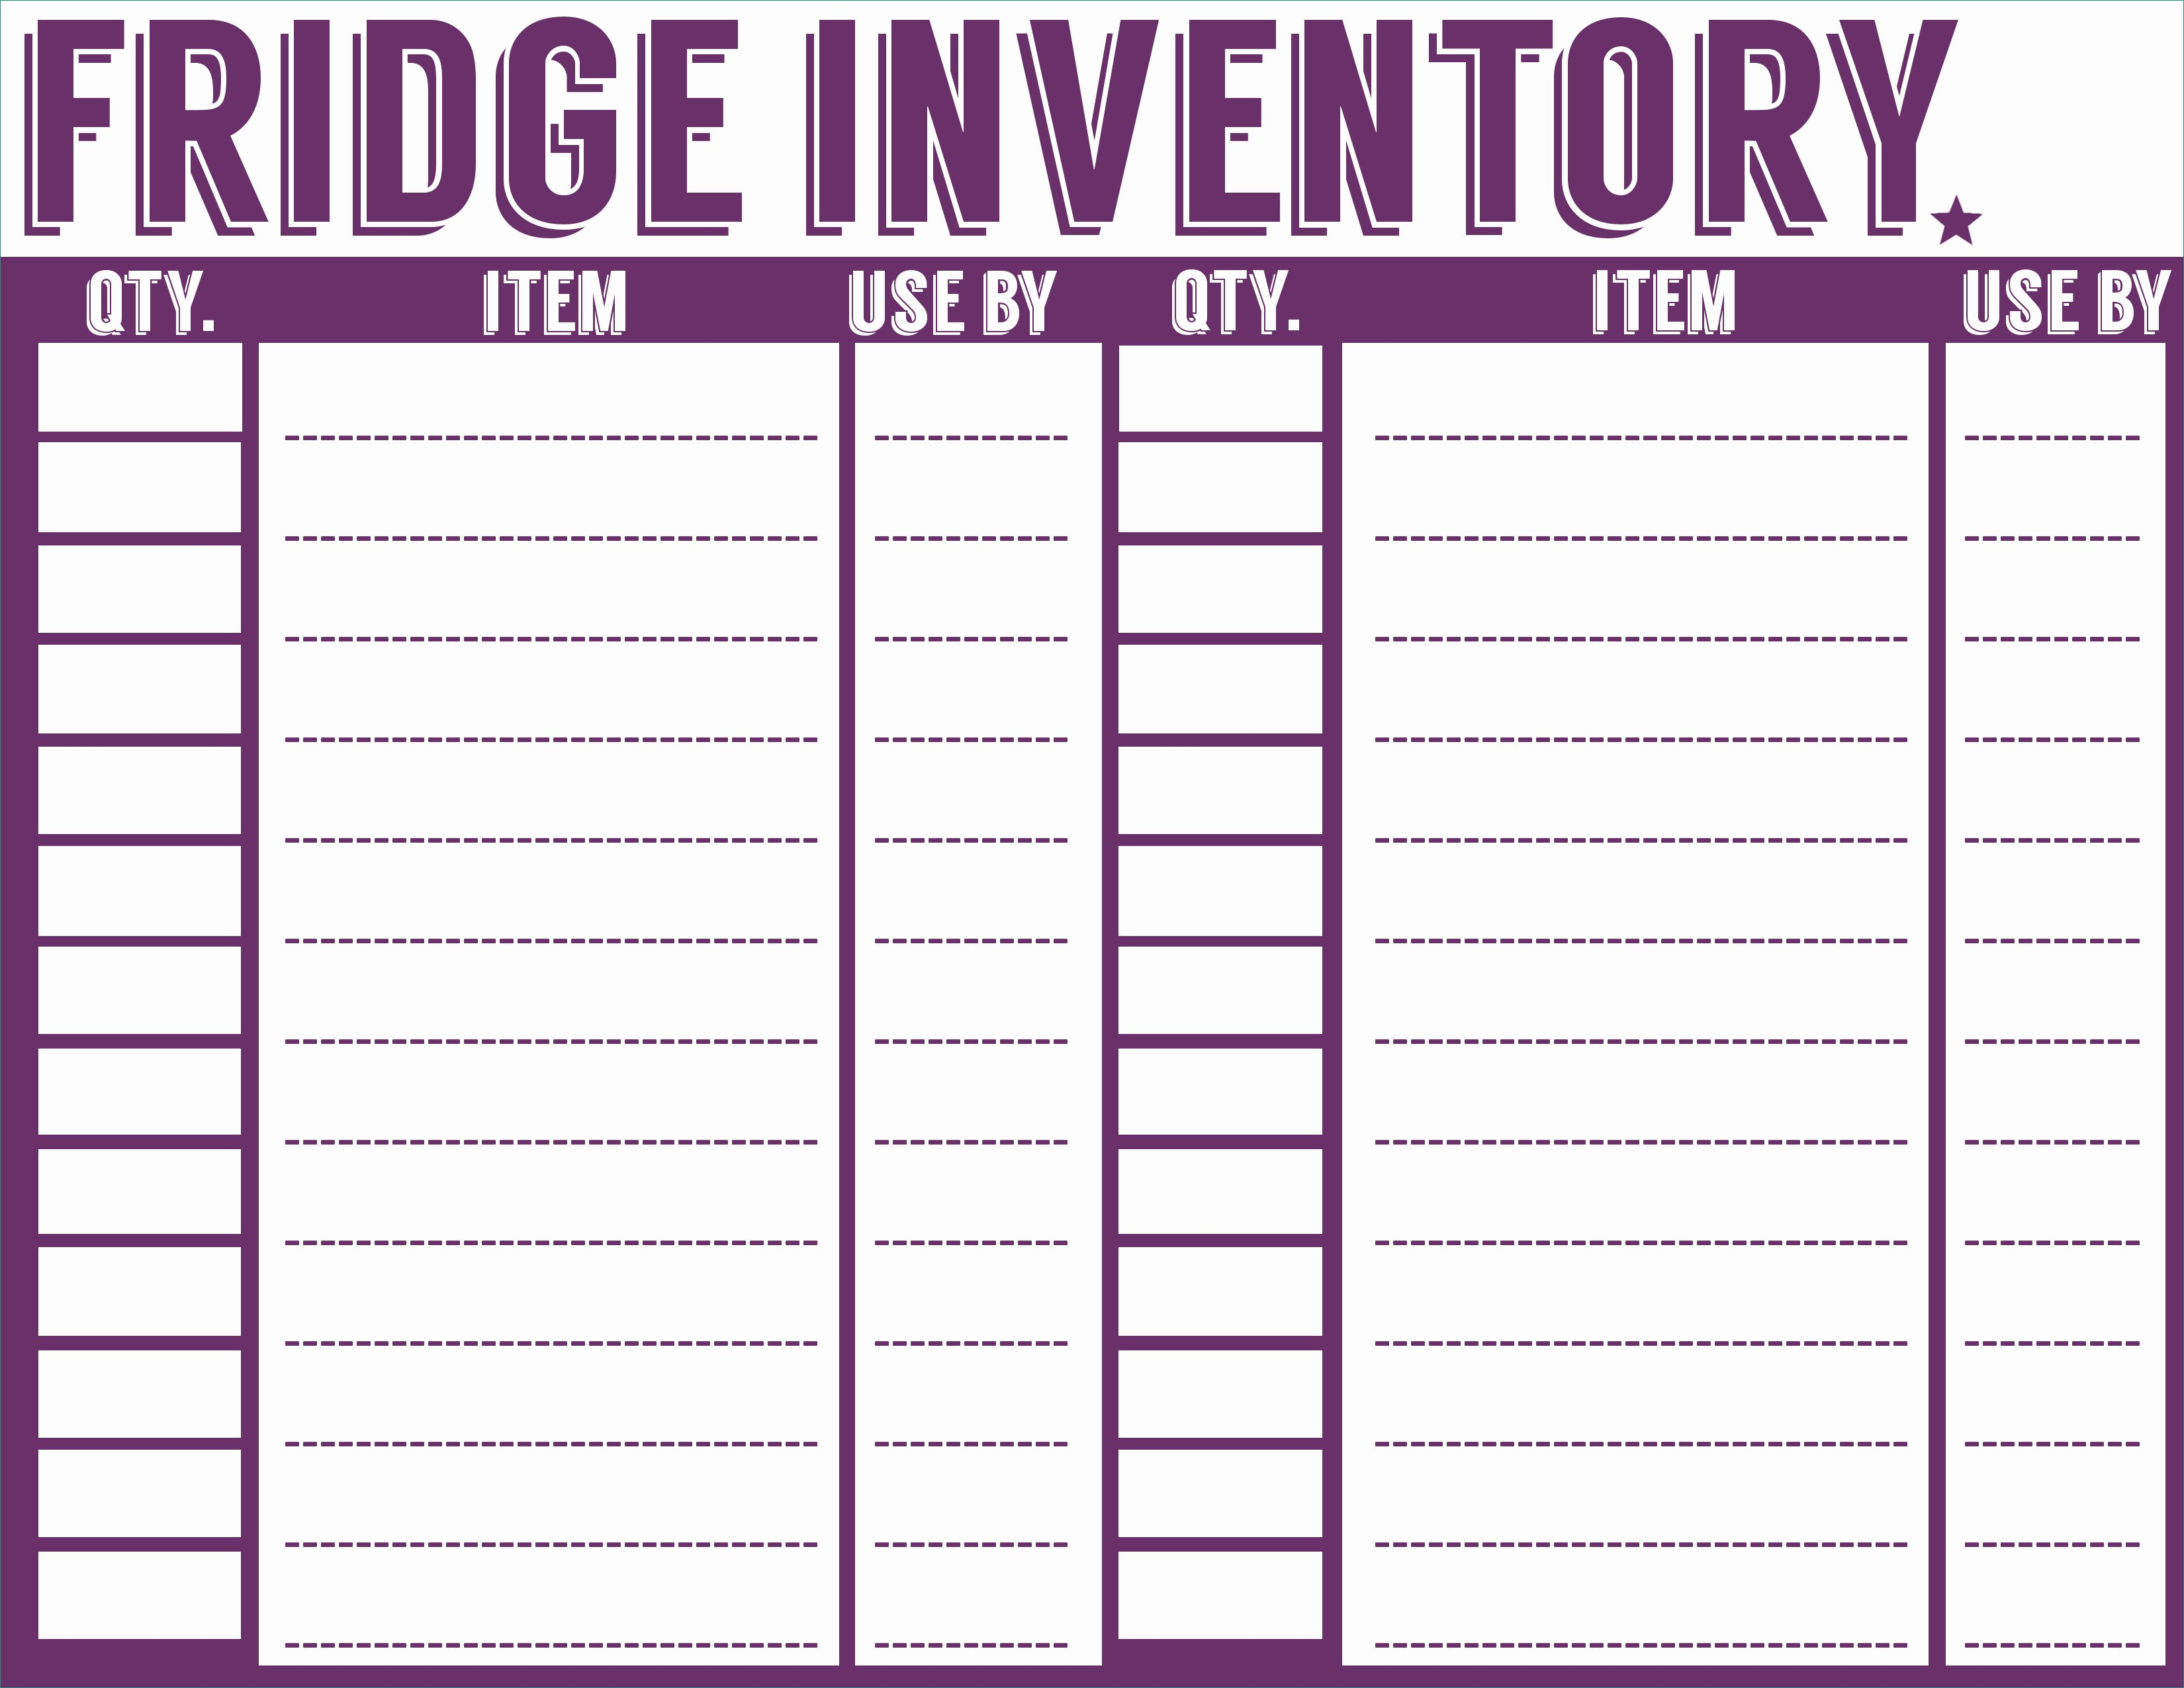 Food Inventory Sheet Printable Acceptable Free Printable Menu - Free Printable Inventory Sheets